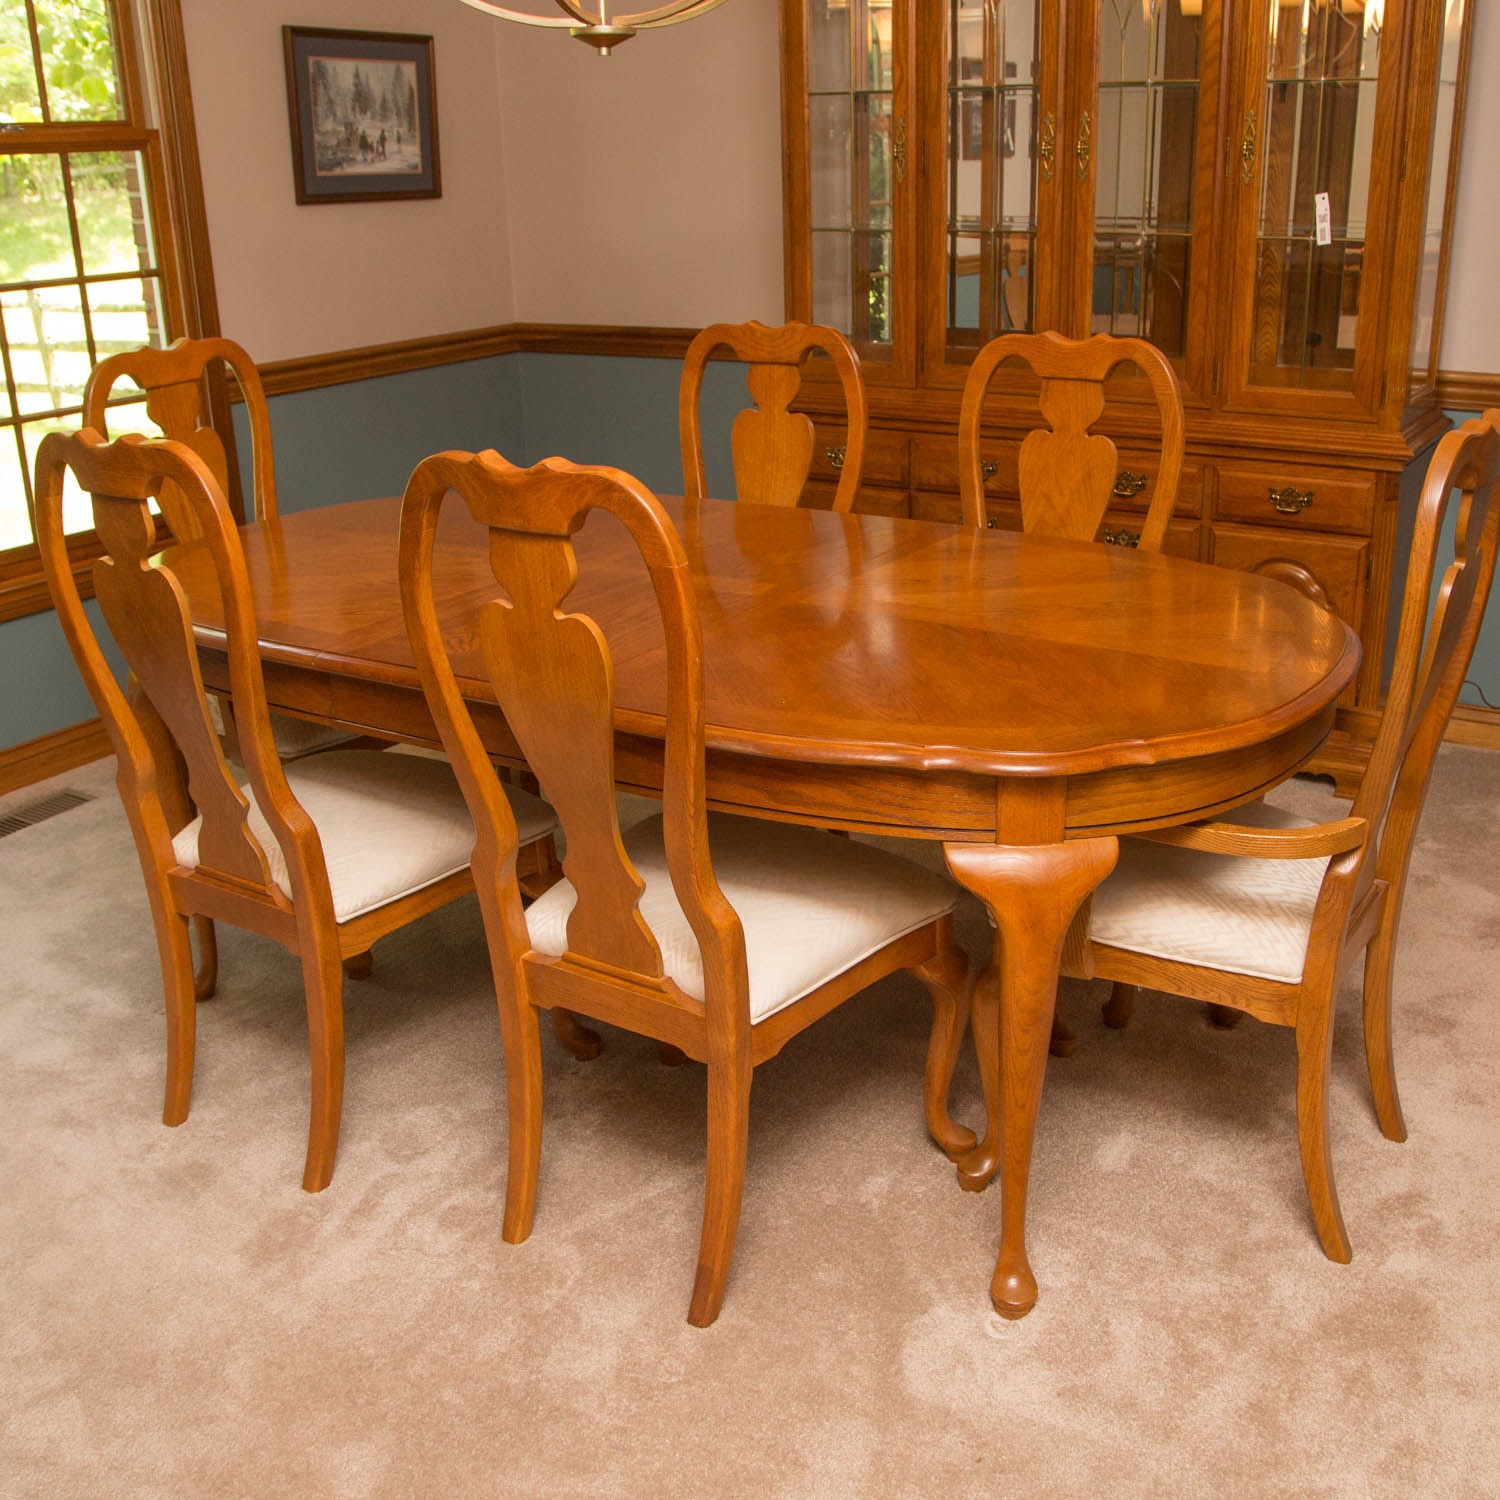 Stanley Oak Dining Table and Chairs